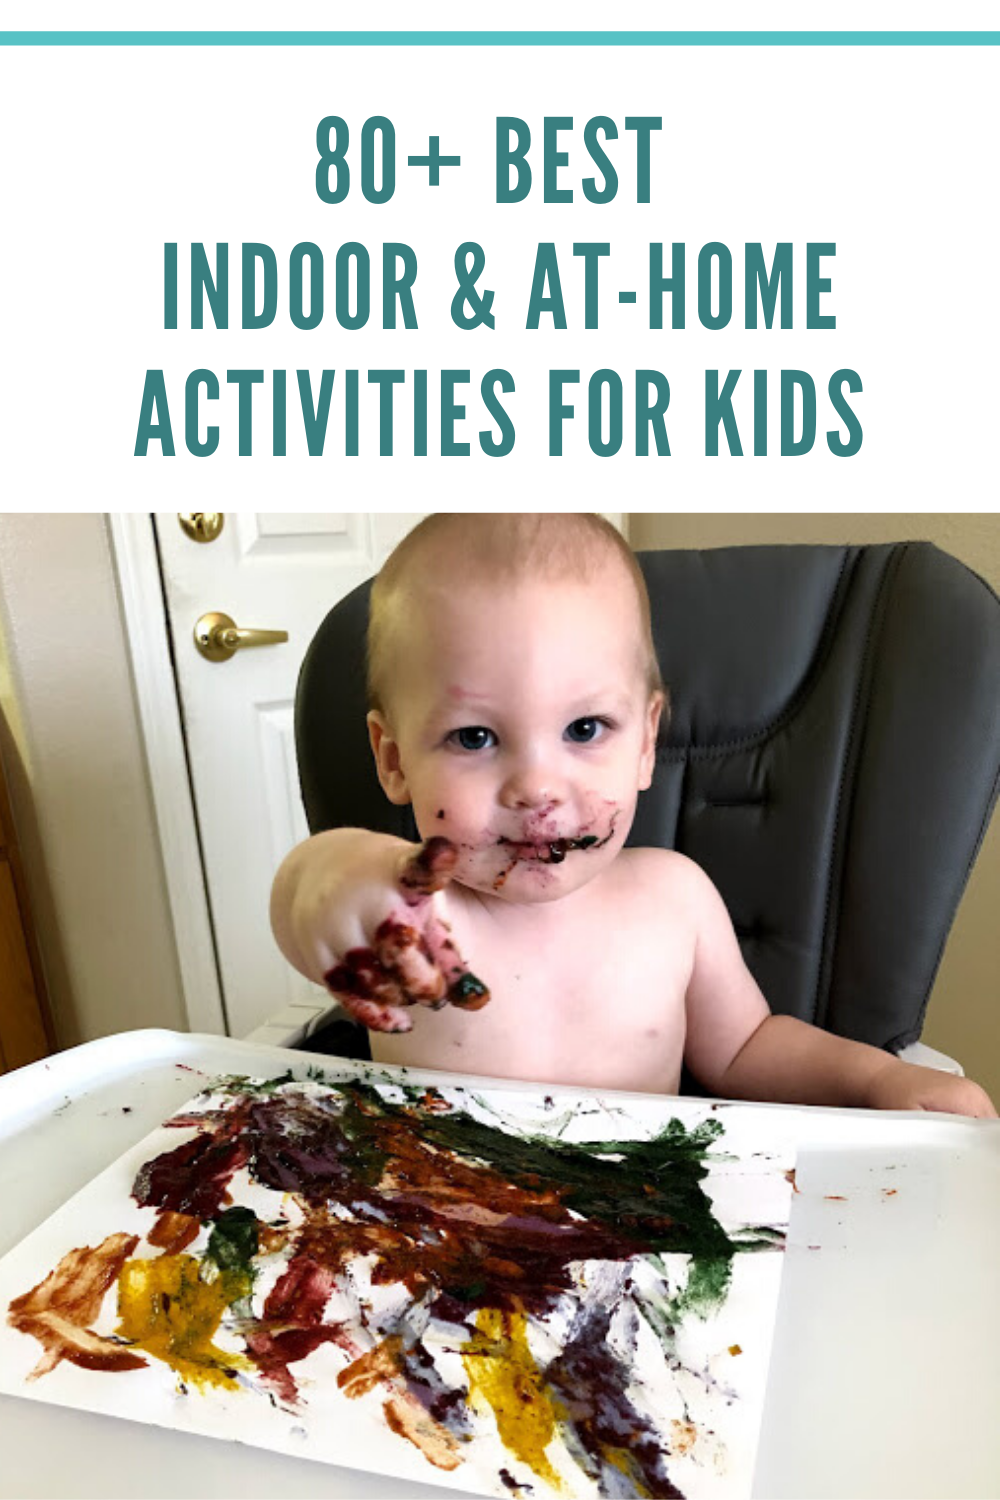 At-Home & Indoor Activities for Kids -  At home and indoor activities for kids. Science experiments. Crafts. Educational tools. Coloring bo - #activities #AtHome #balloongamesforkidsindooractivities #boredideasforkidsindooractivities #boredtoddlerindooractivities #familyfungamesindooractivities #funindooractivities #indoor #indooractivitiesfor1yearold #indooractivitiesfor10monthold #indooractivitiesfor10yearoldboys #indooractivitiesfor10yearolds #indooractivitiesfor12monthold #indooractivitiesf